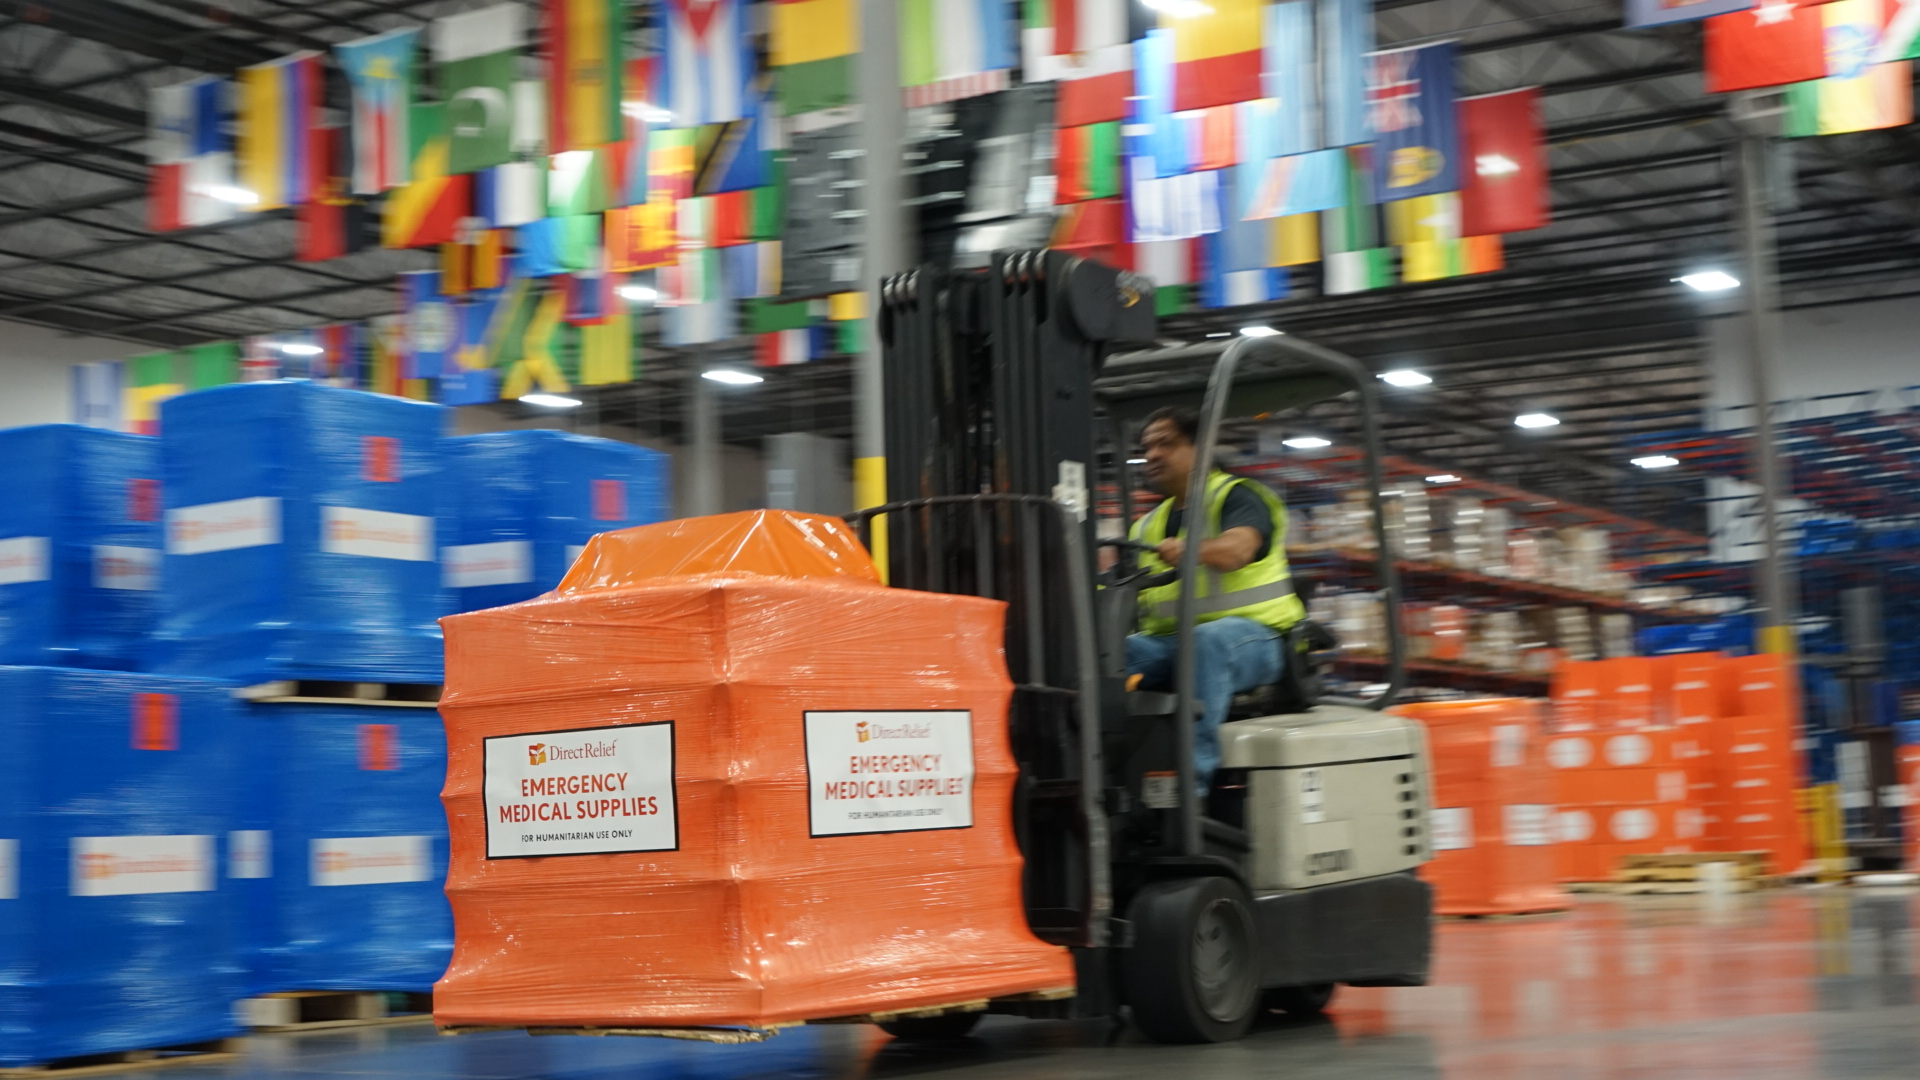 Direct Relief emergency medical aid on forklift